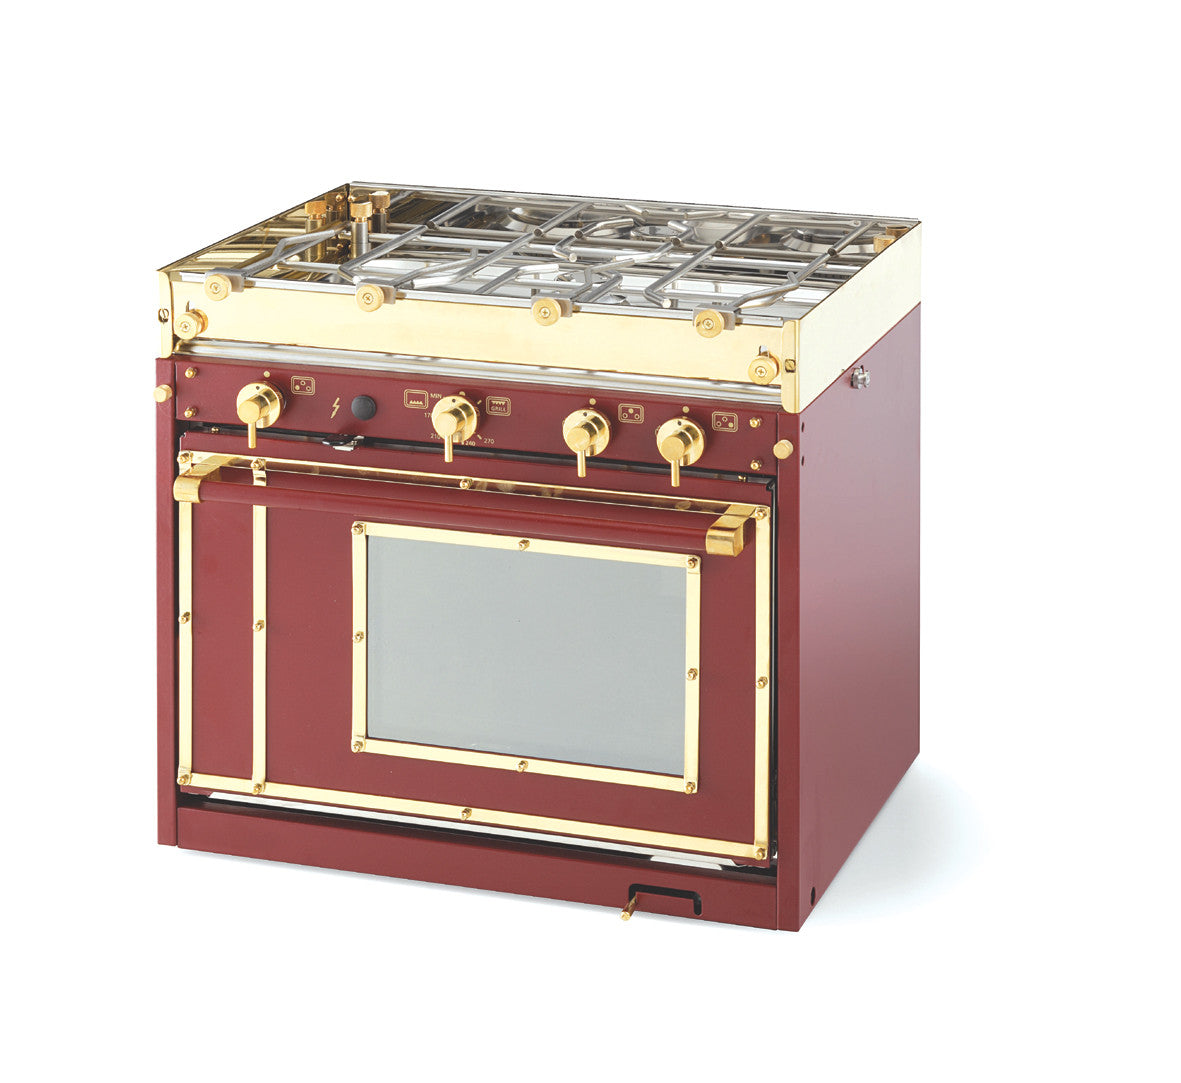 Royal - The Luxury cooker with oven for Classic Yachts